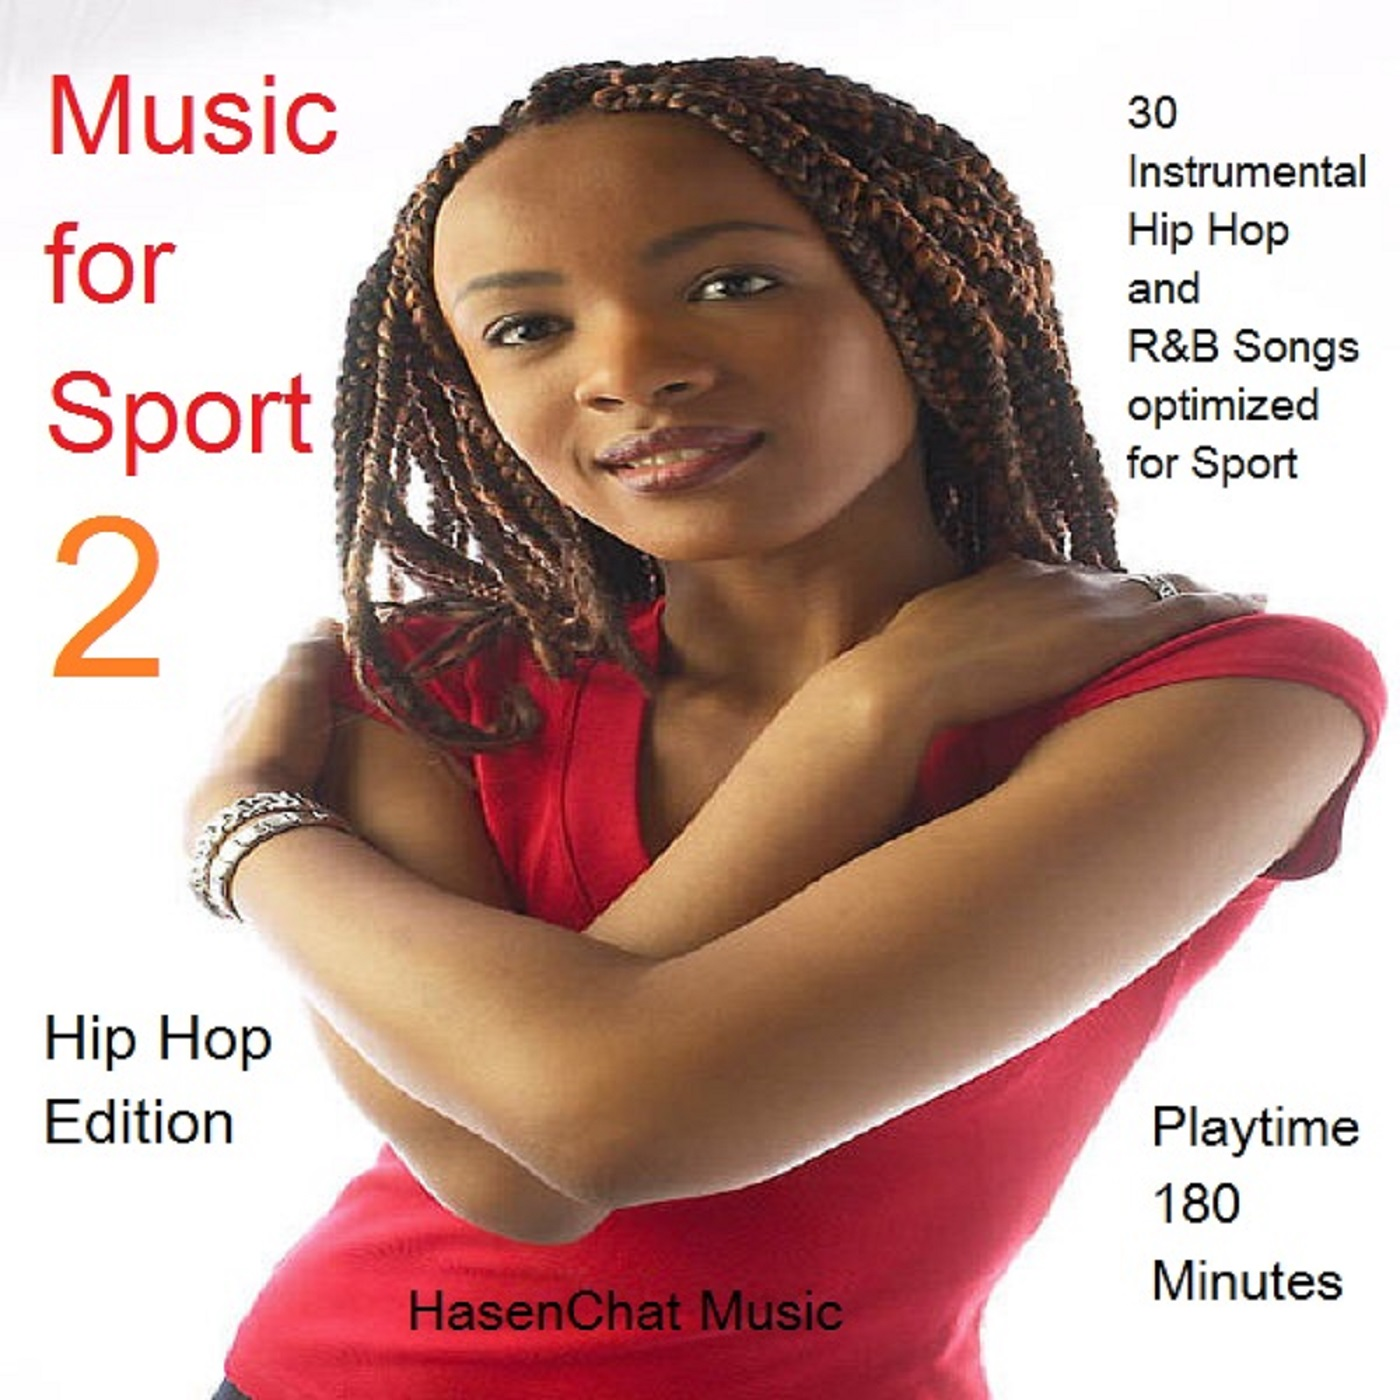 HasenChat Music - Music for Sport - Episode 2